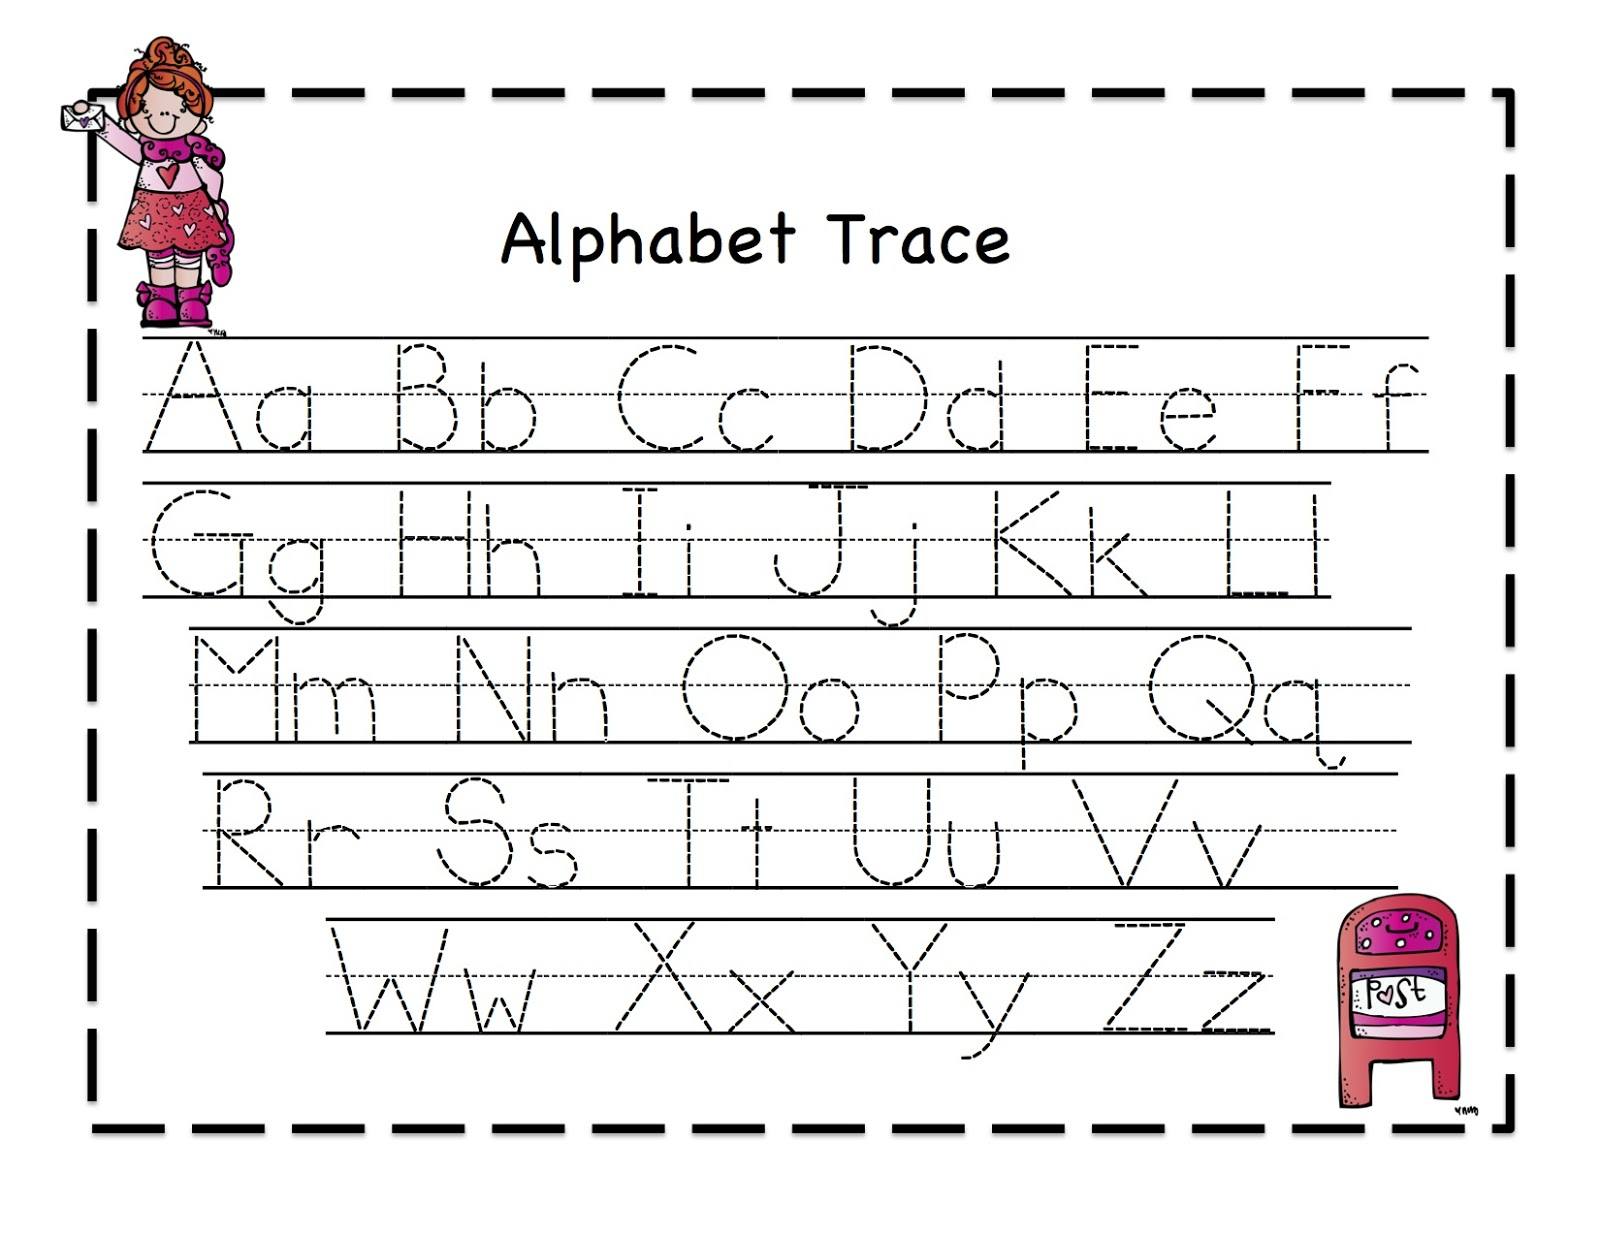 Worksheets Pre K Alphabet Tracing Worksheets free letters to trace for crafts printable preschool alphabet tracing worksheets